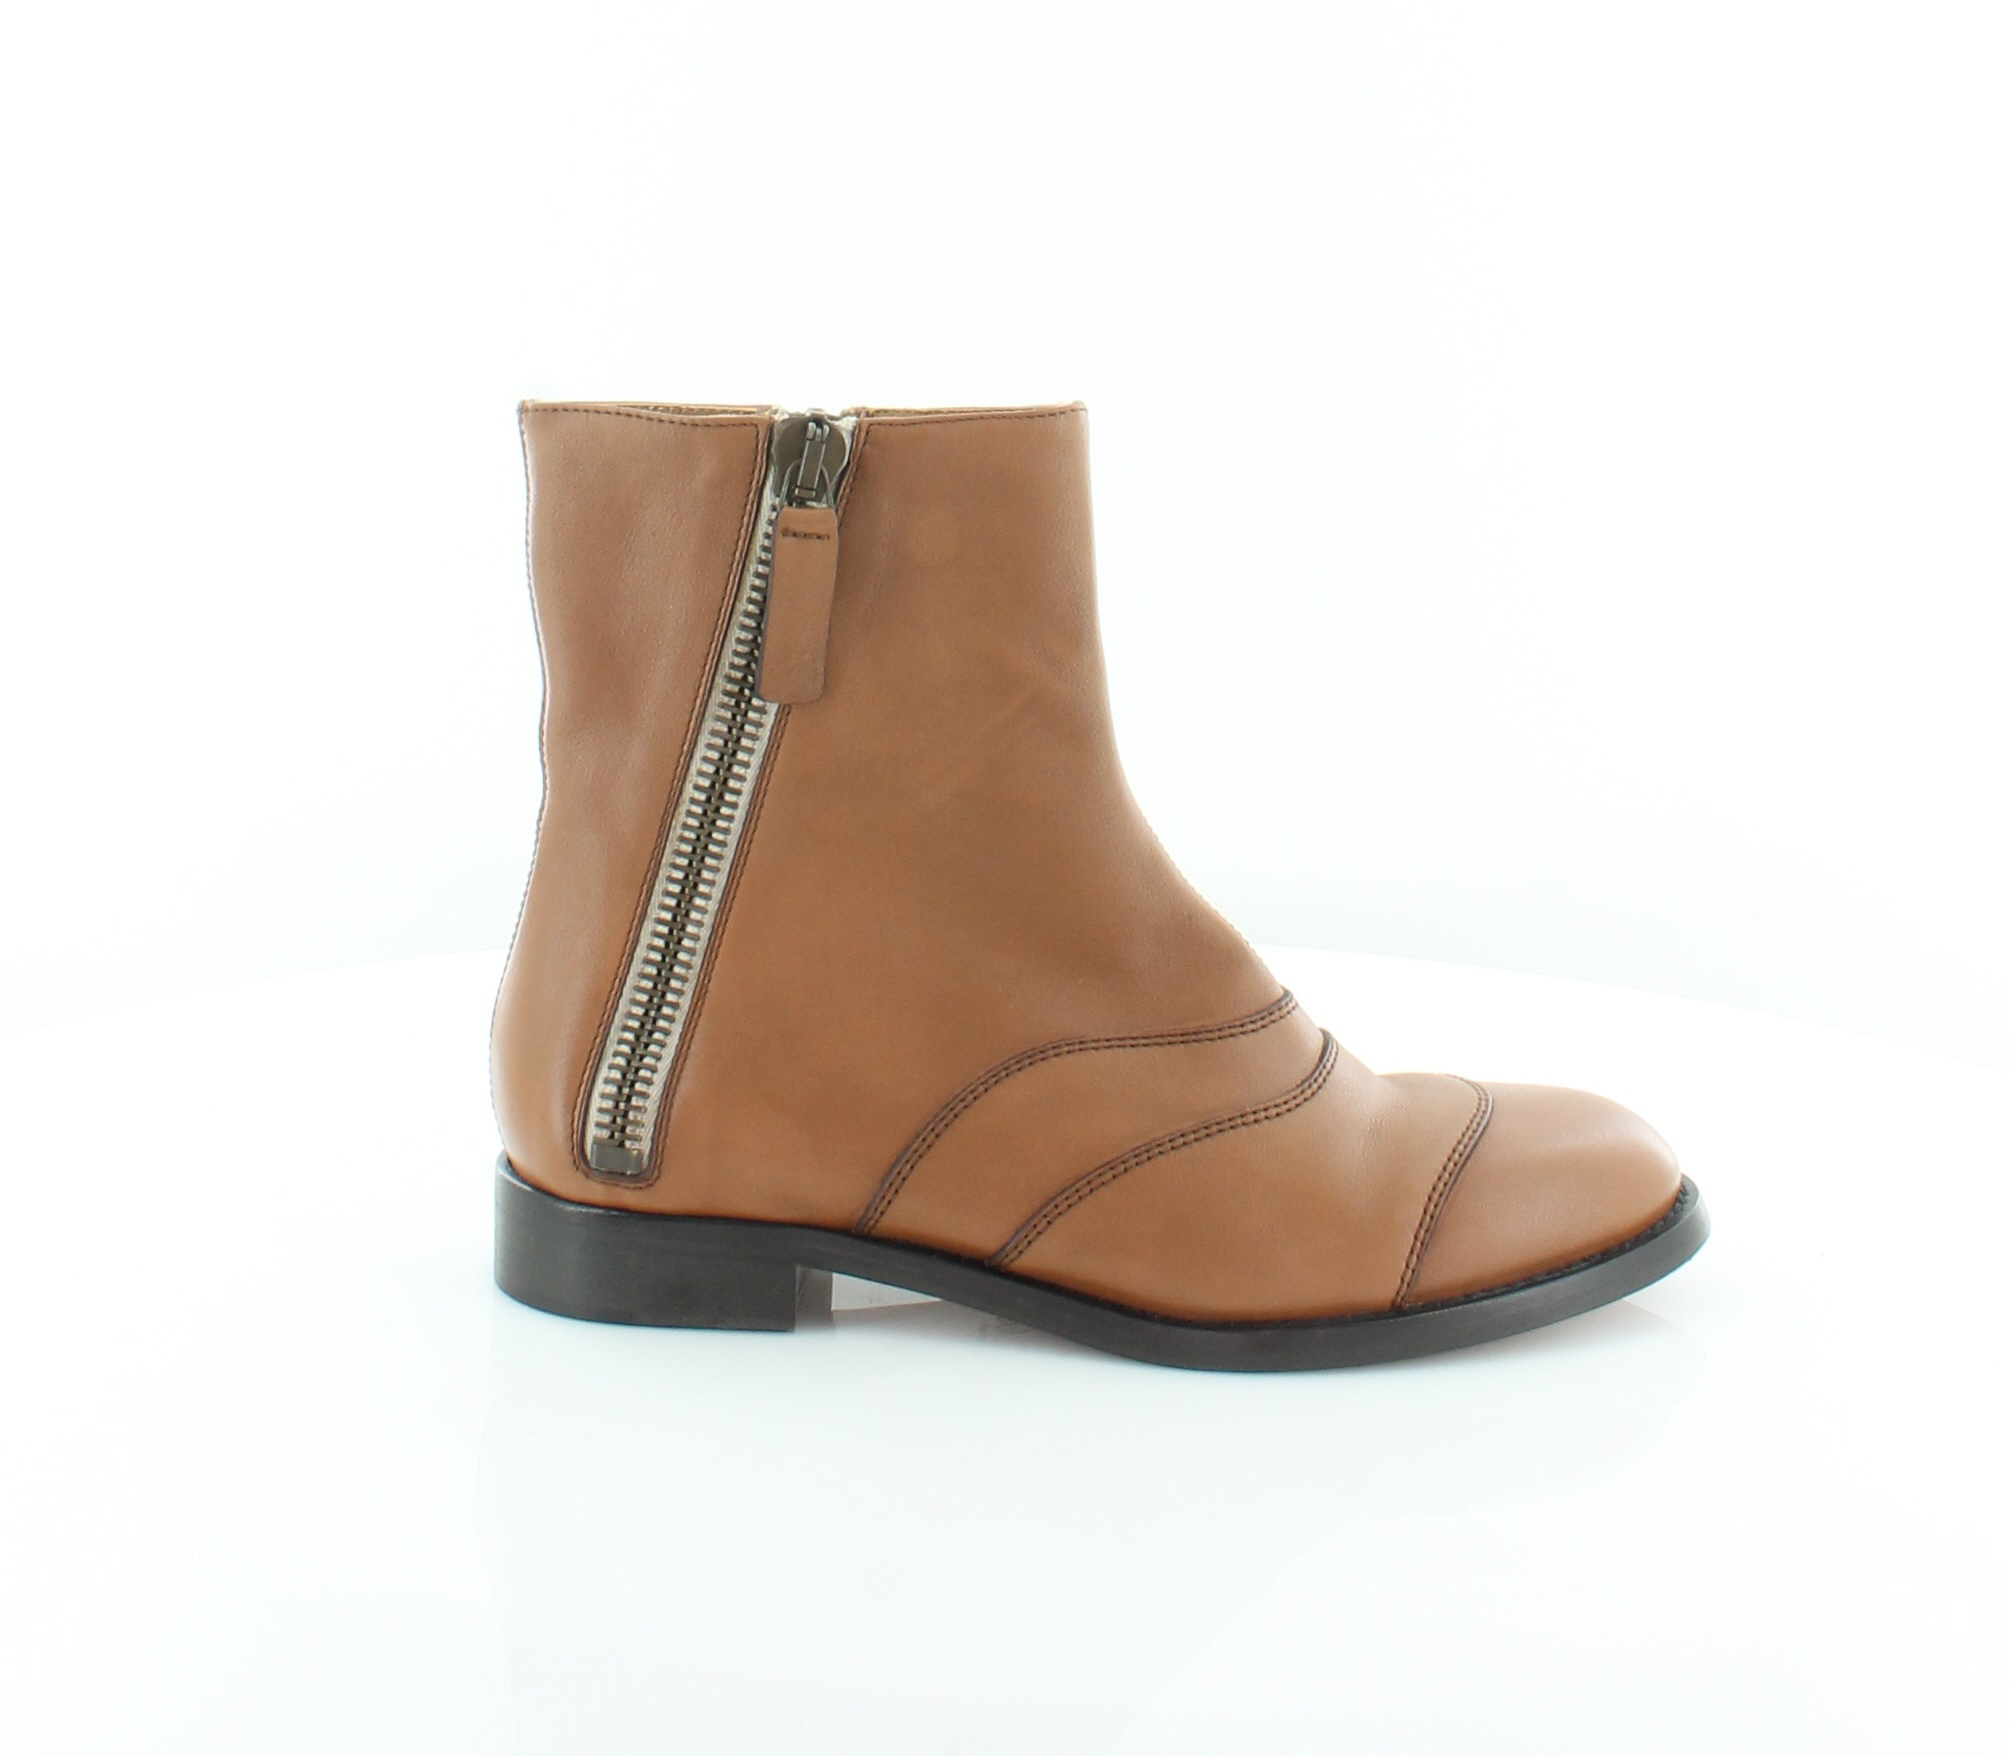 cf385ff9716a Chloe New Lexie Brown Womens Shoes Size 6 M Boots MSRP  995 ...